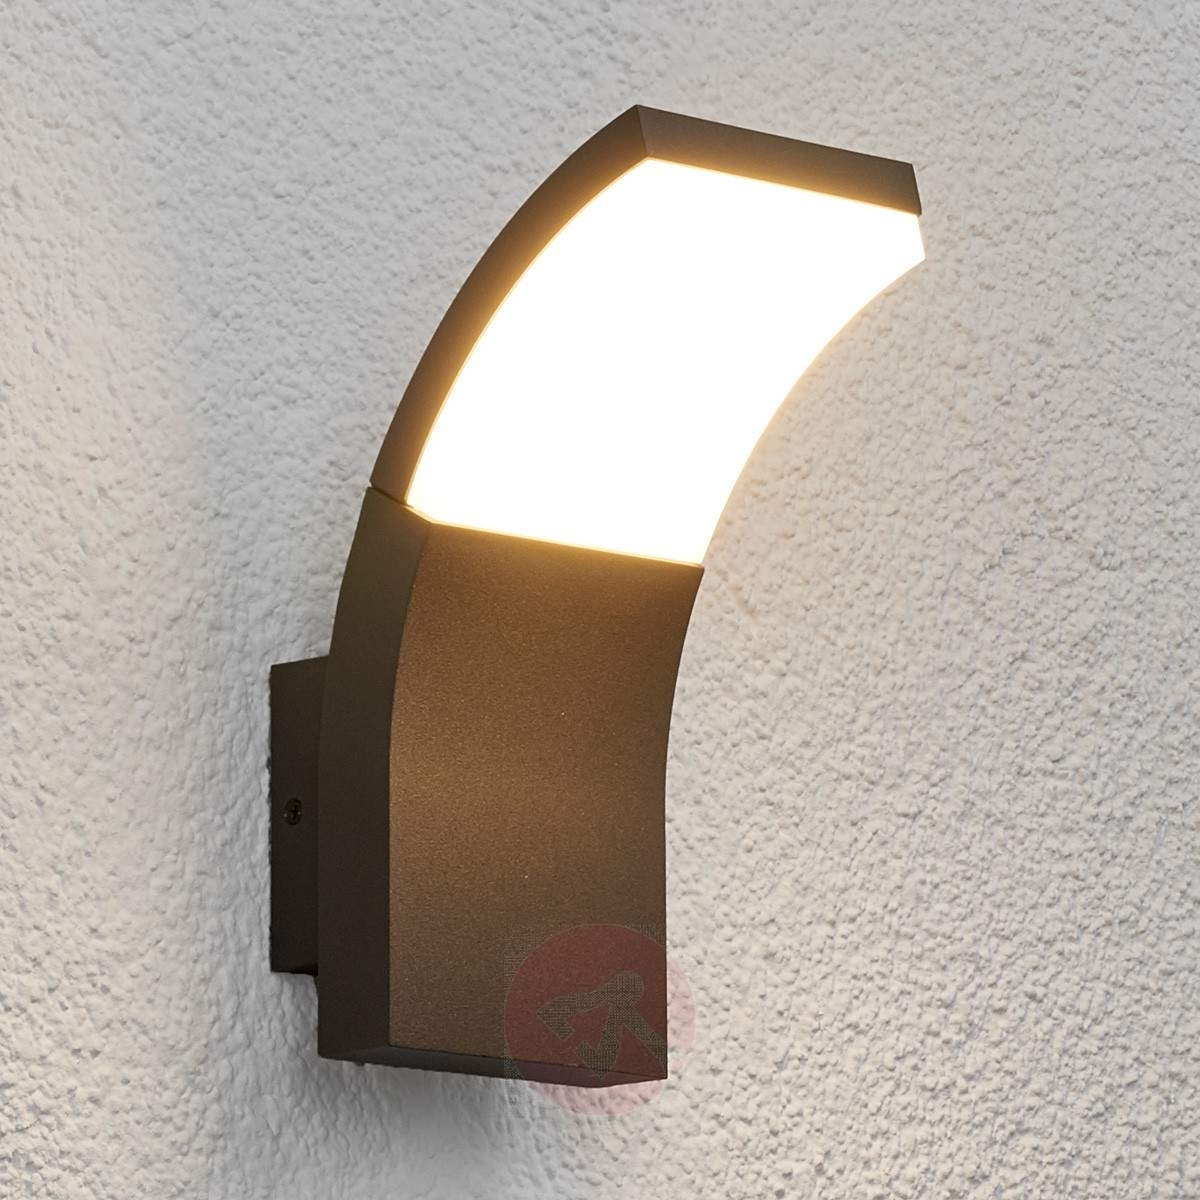 Popular Led Outdoor Wall Light Timm Lights Co Uk Brilliant Led In 4 Within Ip65 Outdoor Wall Lights (View 18 of 20)